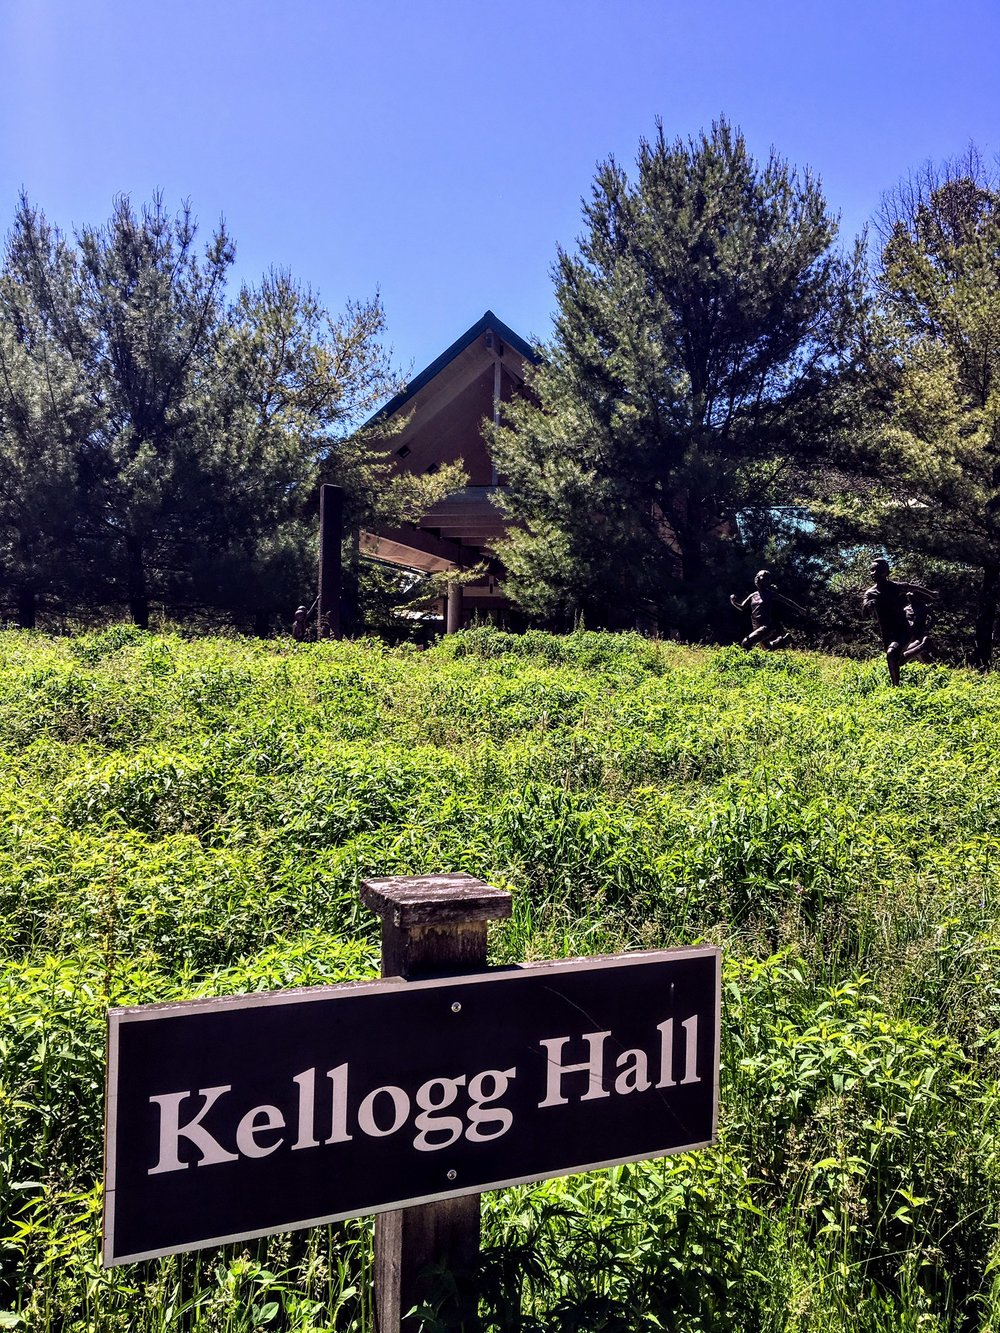 Kellogg Hall, named in honor of W.K. Kellogg II, is where nearly all of our meals  are held.  Downstairs we have our nature room and art studio.